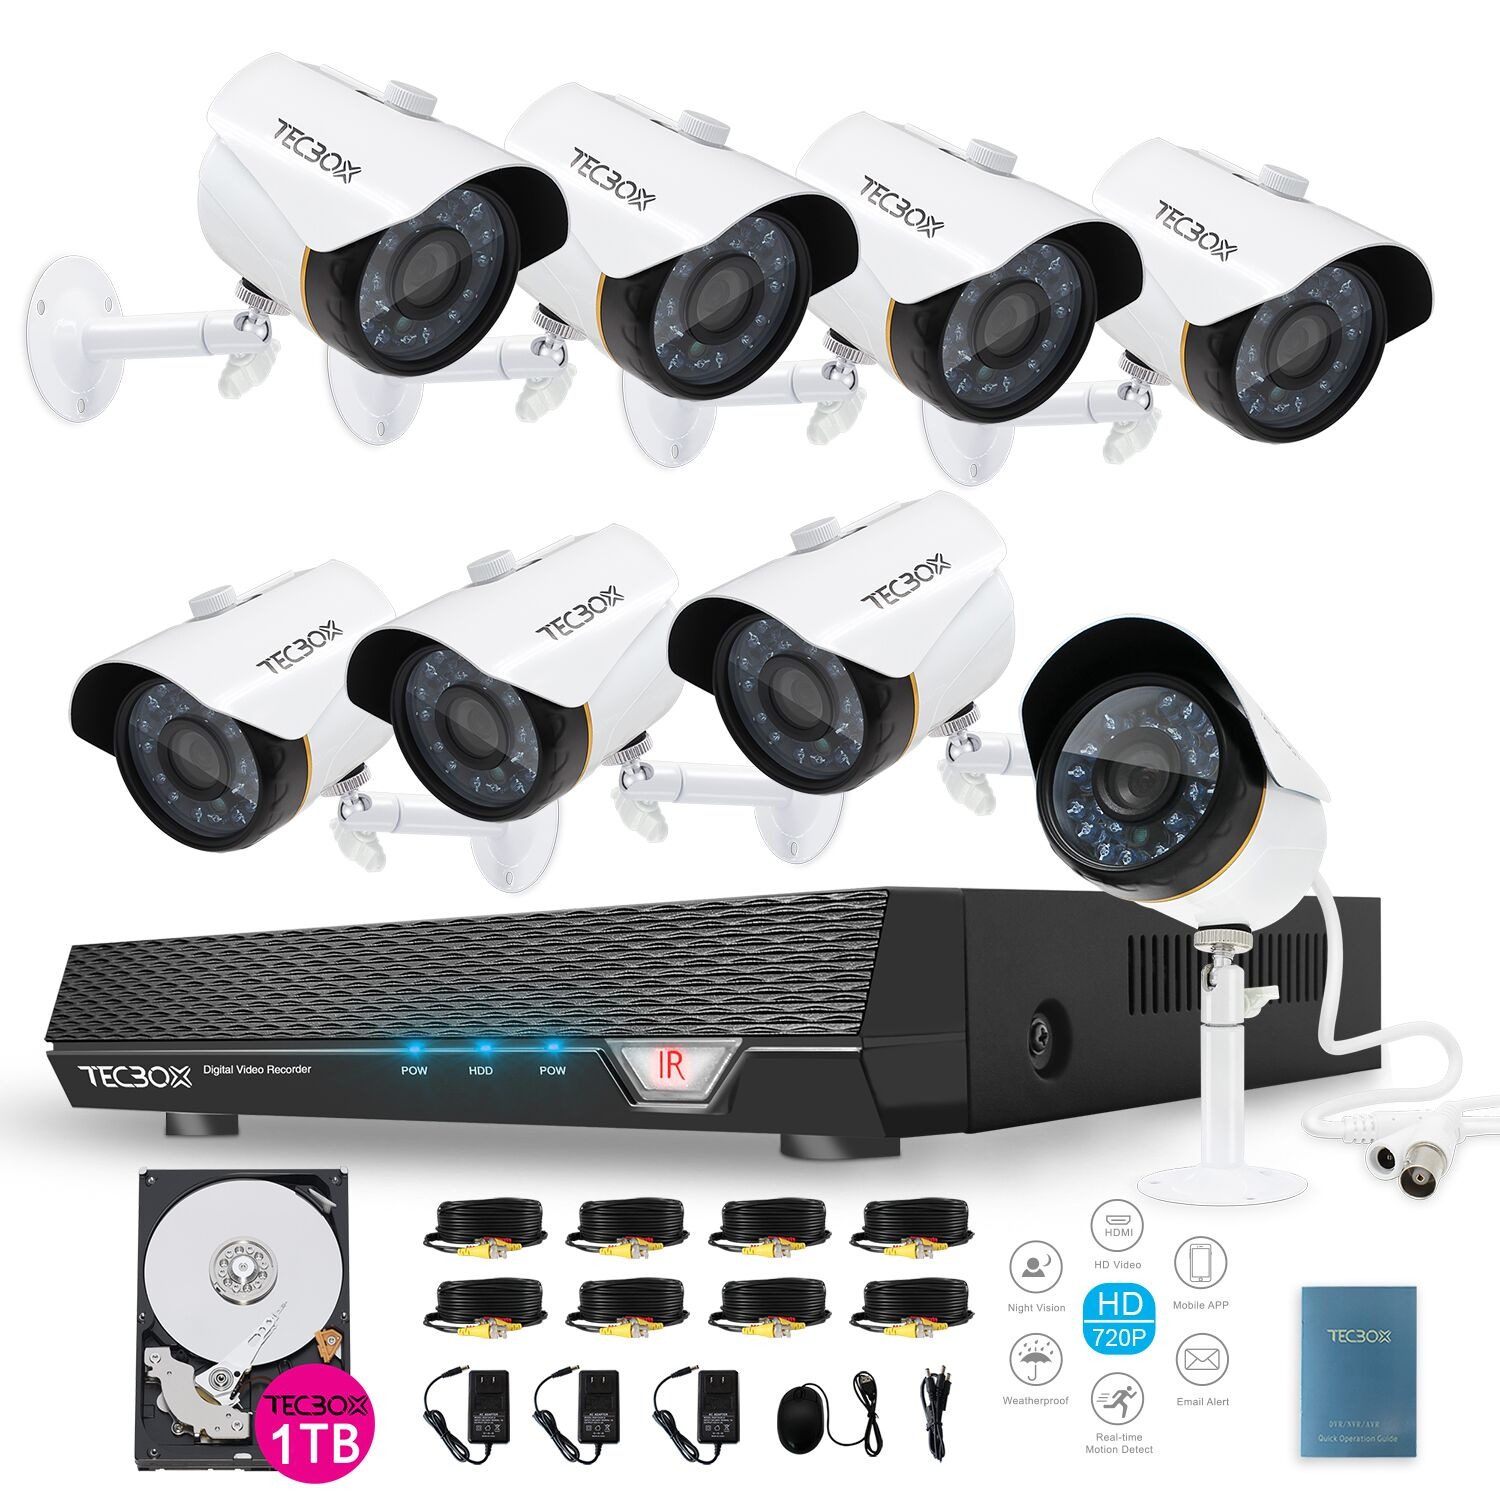 Tecbox 8 Channel Home Surveillance Camera System CCTV Security HDMI AHD DVR 8 HD 720P Indoor/Outdoor Cameras Remote View Motion Detection 1TB HDD Pre-installed